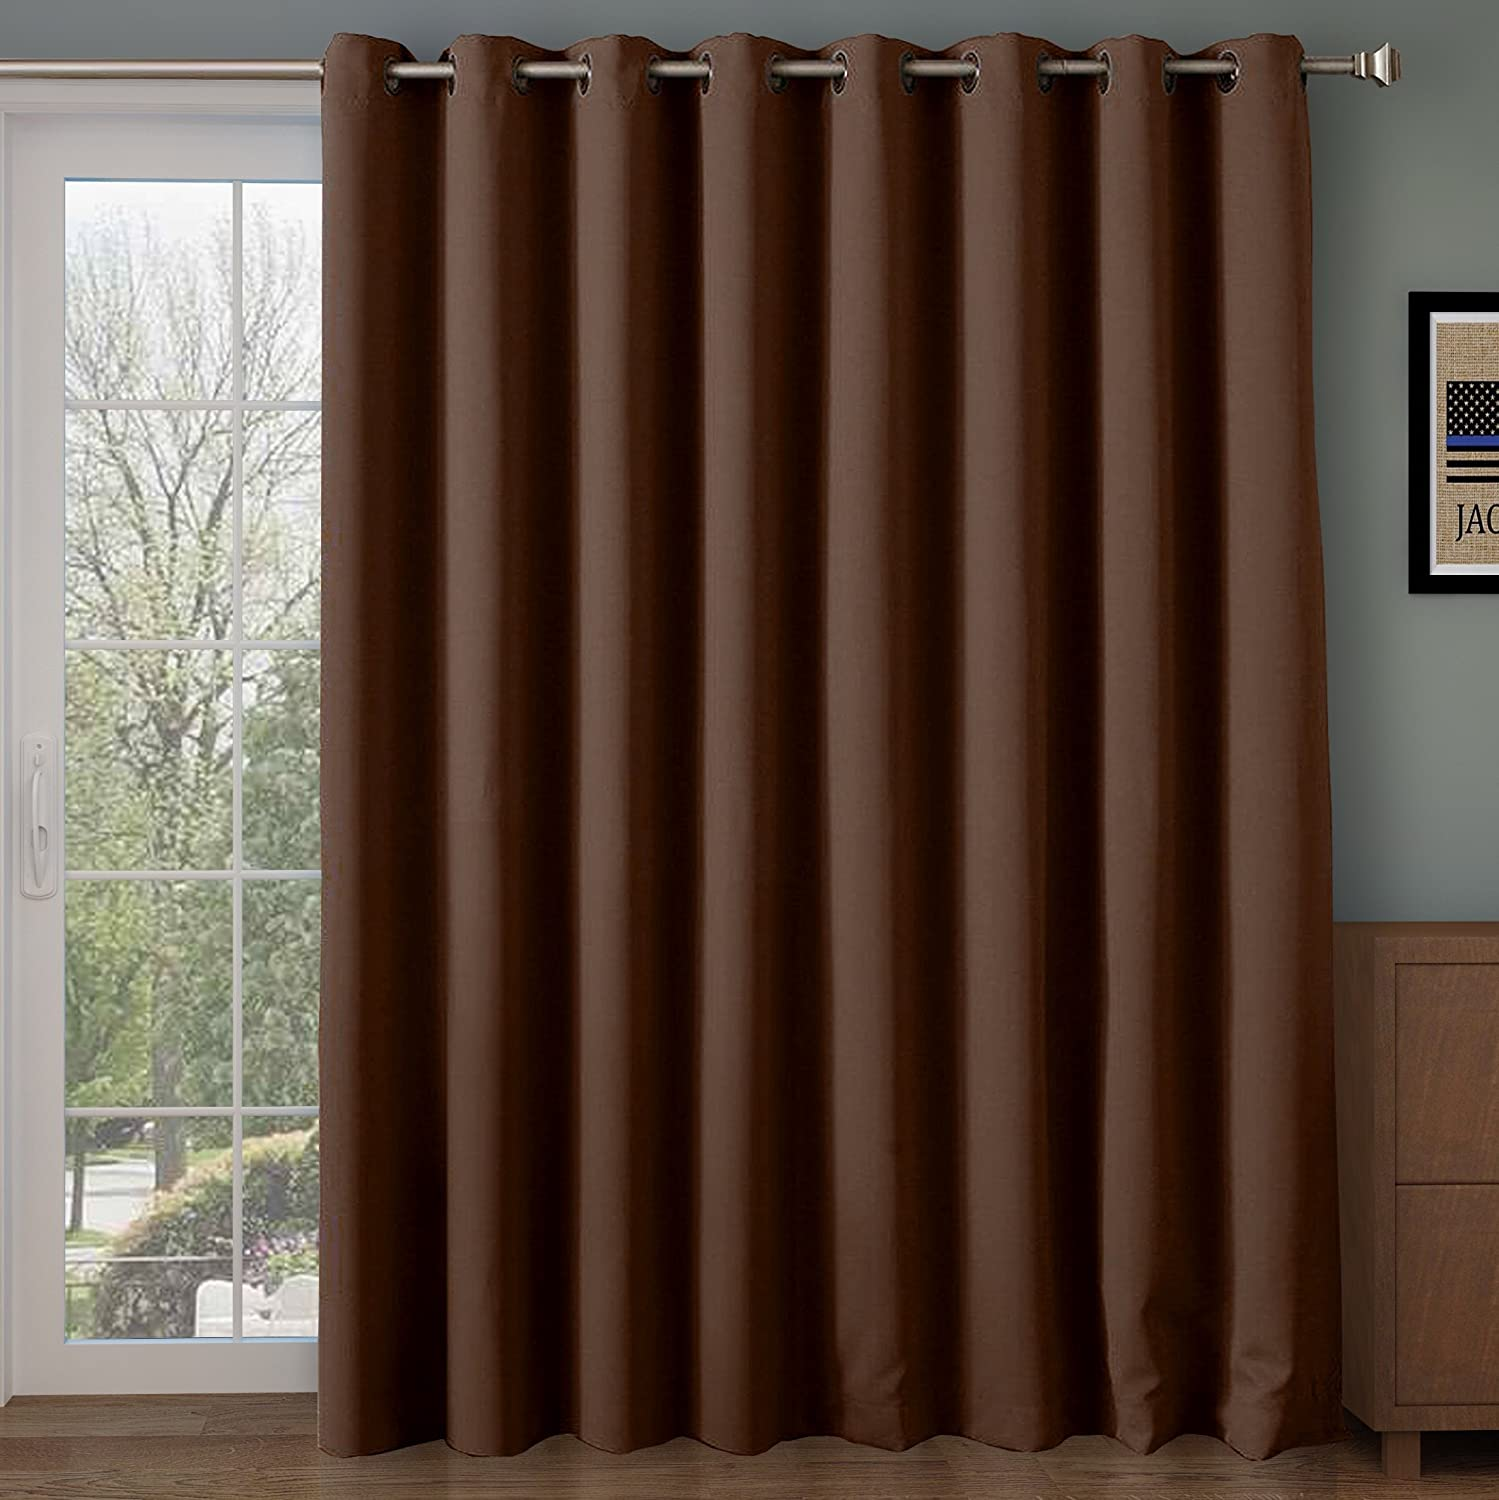 Rose Home Fashion RHF Function Curtain-Wide Thermal Blackout Patio Door Curtain Panel, Sliding Door Insulated Curtains,Extra Wide Curtains,Vertical Blinds,Grommet Curtains(Chocolate-100 by 96 Inches)